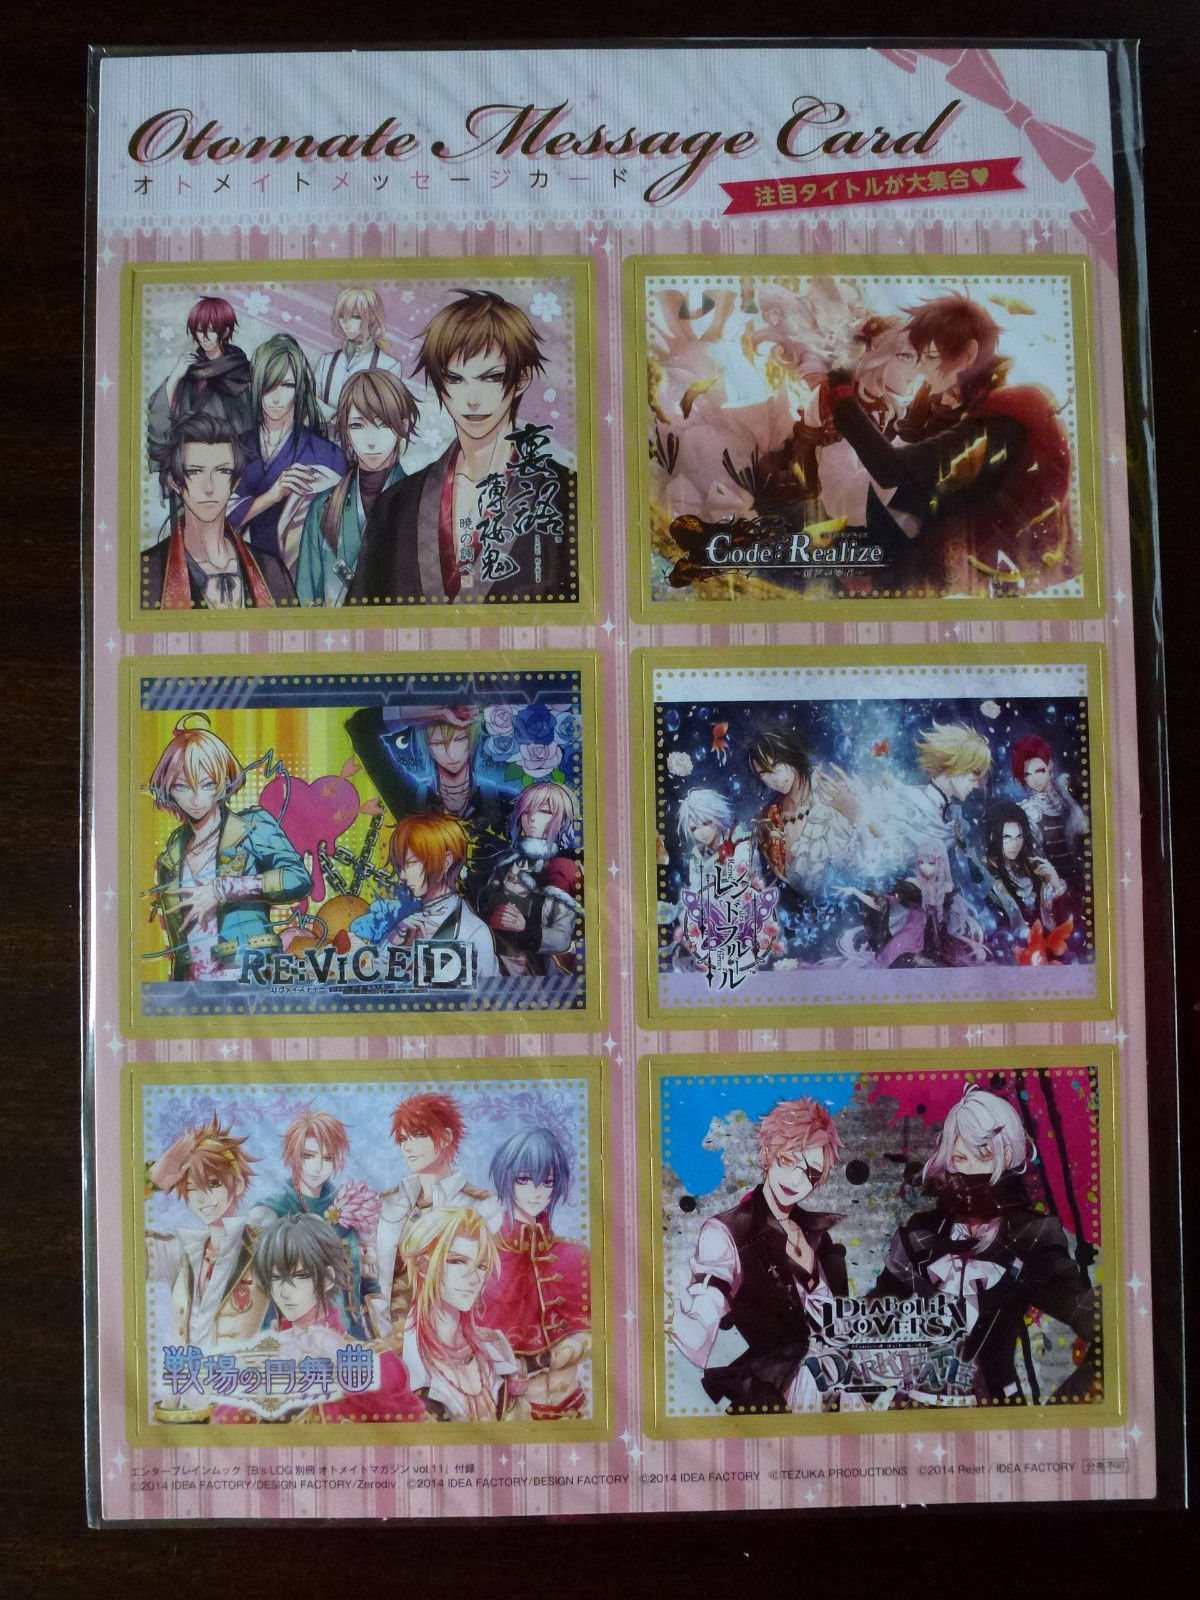 6x Otomate Message Cards Diabolik Lovers Code: Realize Re:Vice anime Japan RARE